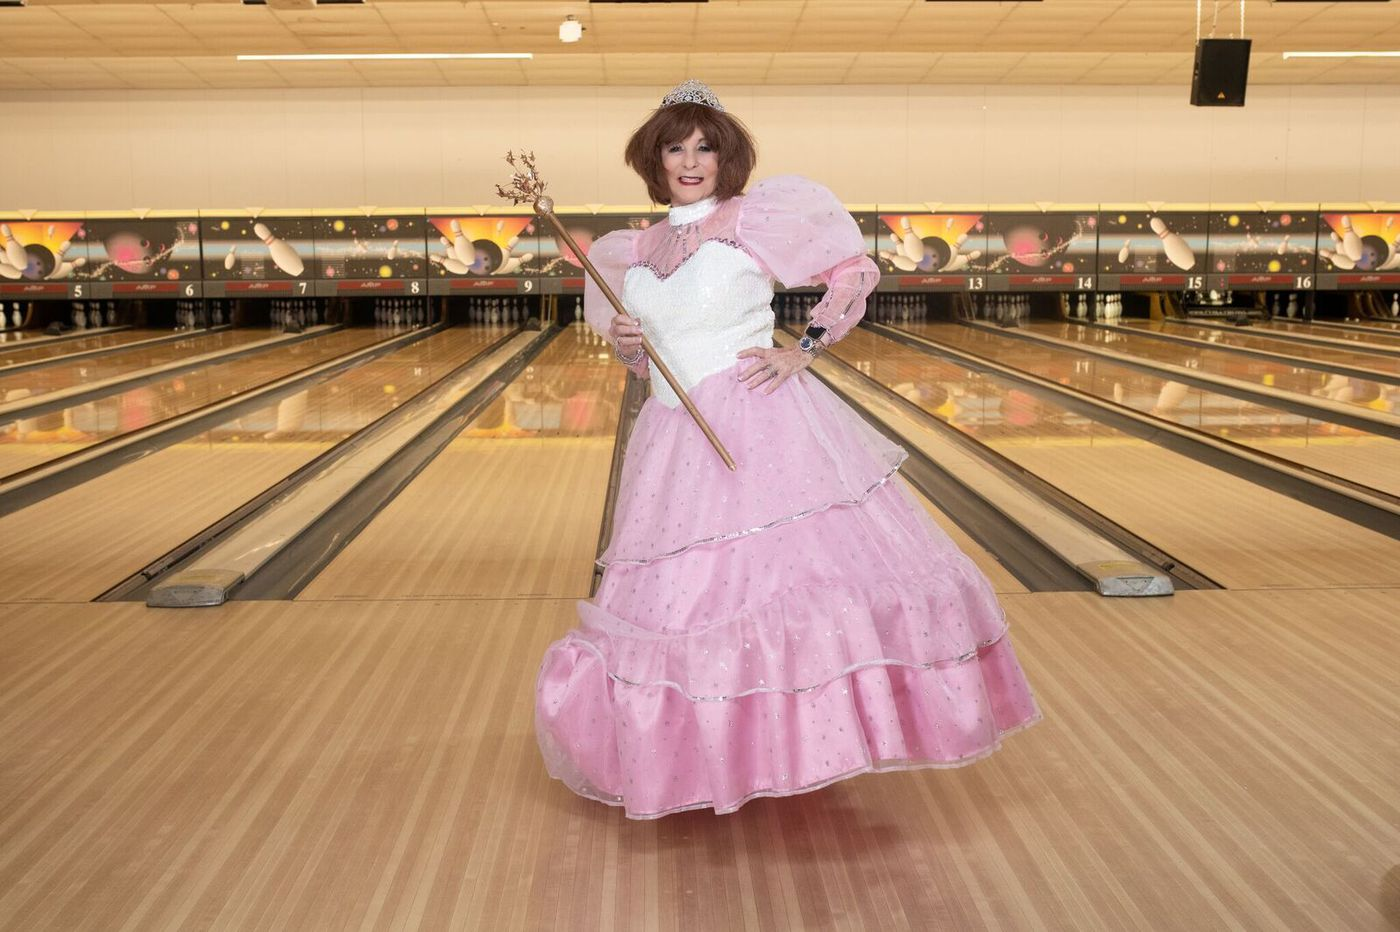 Meet Elaine Brumberg: COVID-19 survivor and Bucks County's bowling alley beauty queen